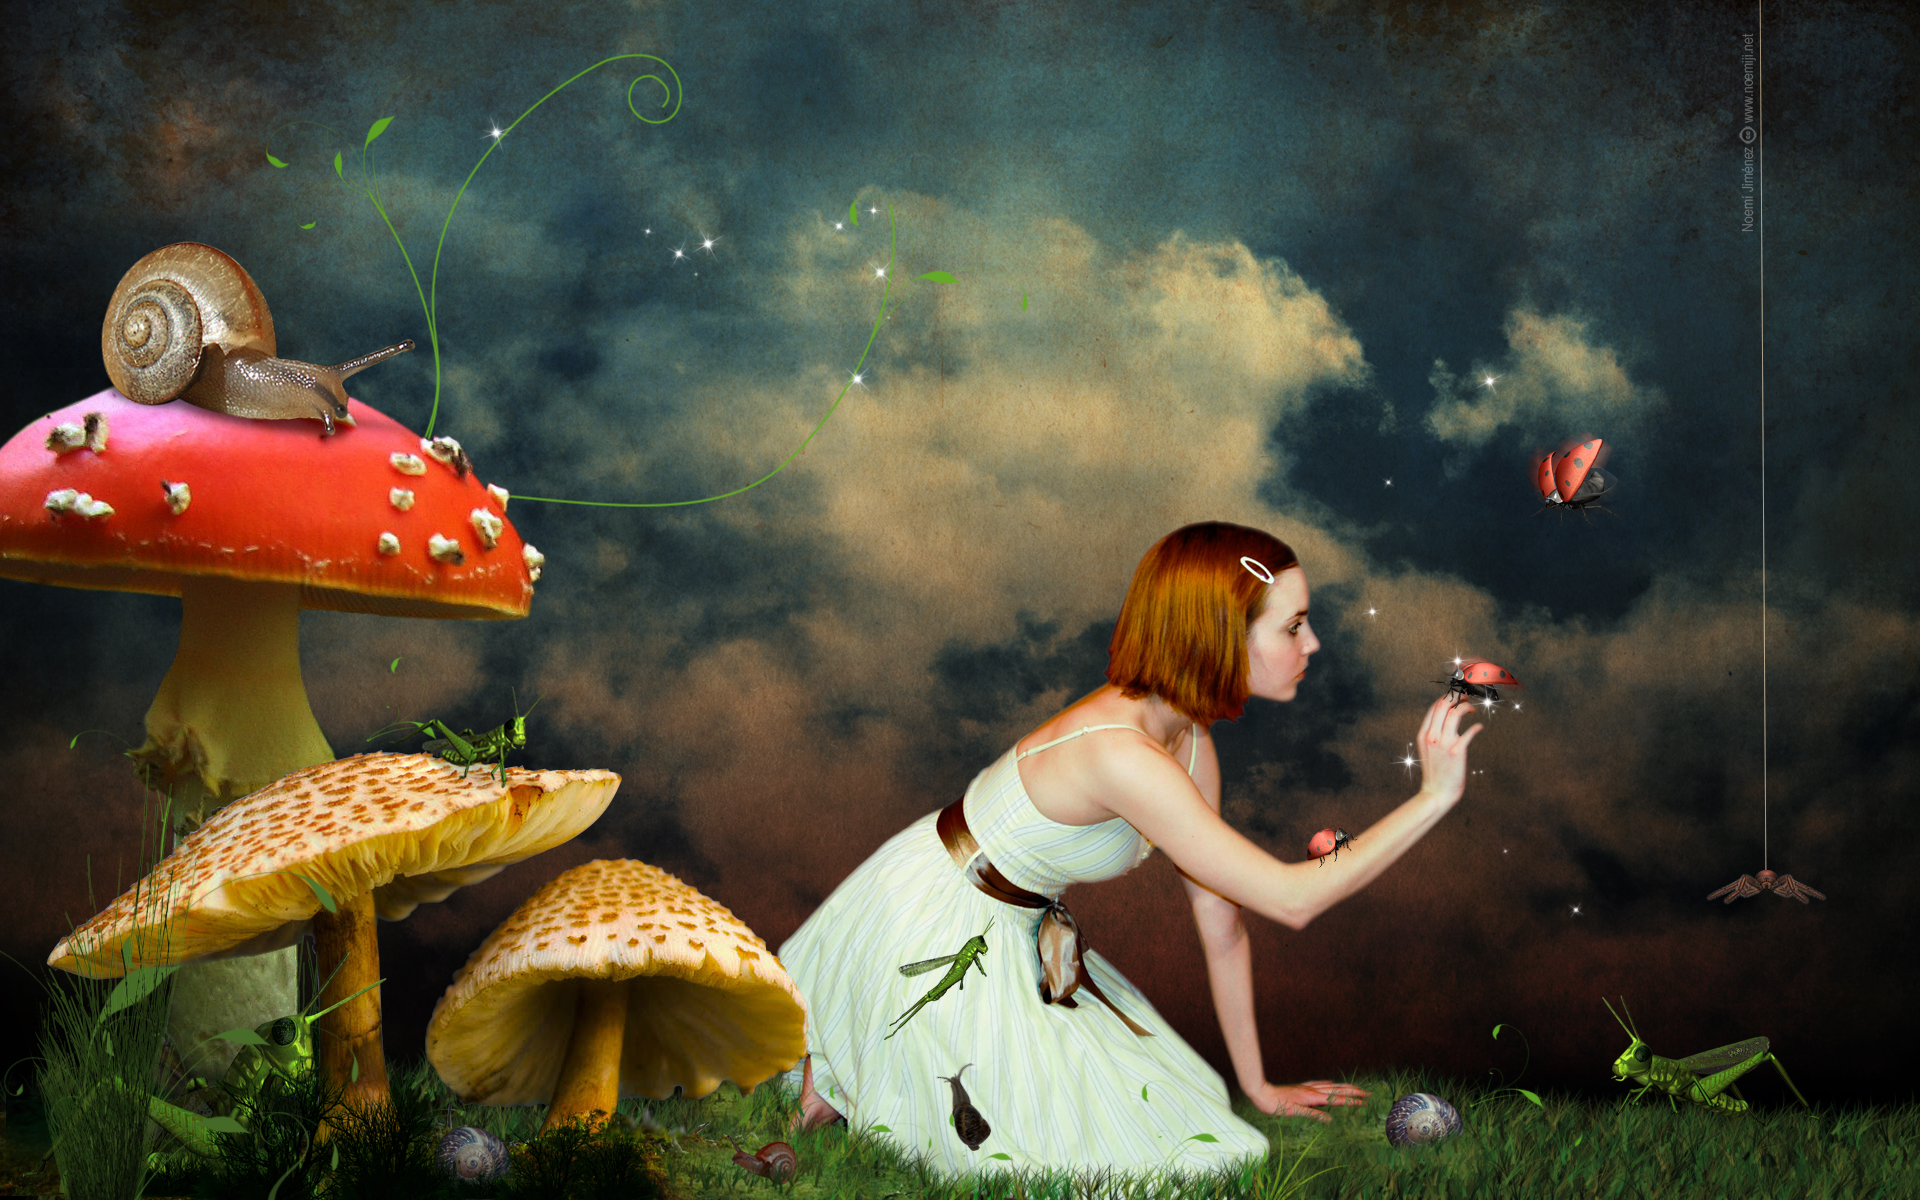 Child fairy tale mushroom bird digital art 1920x1200